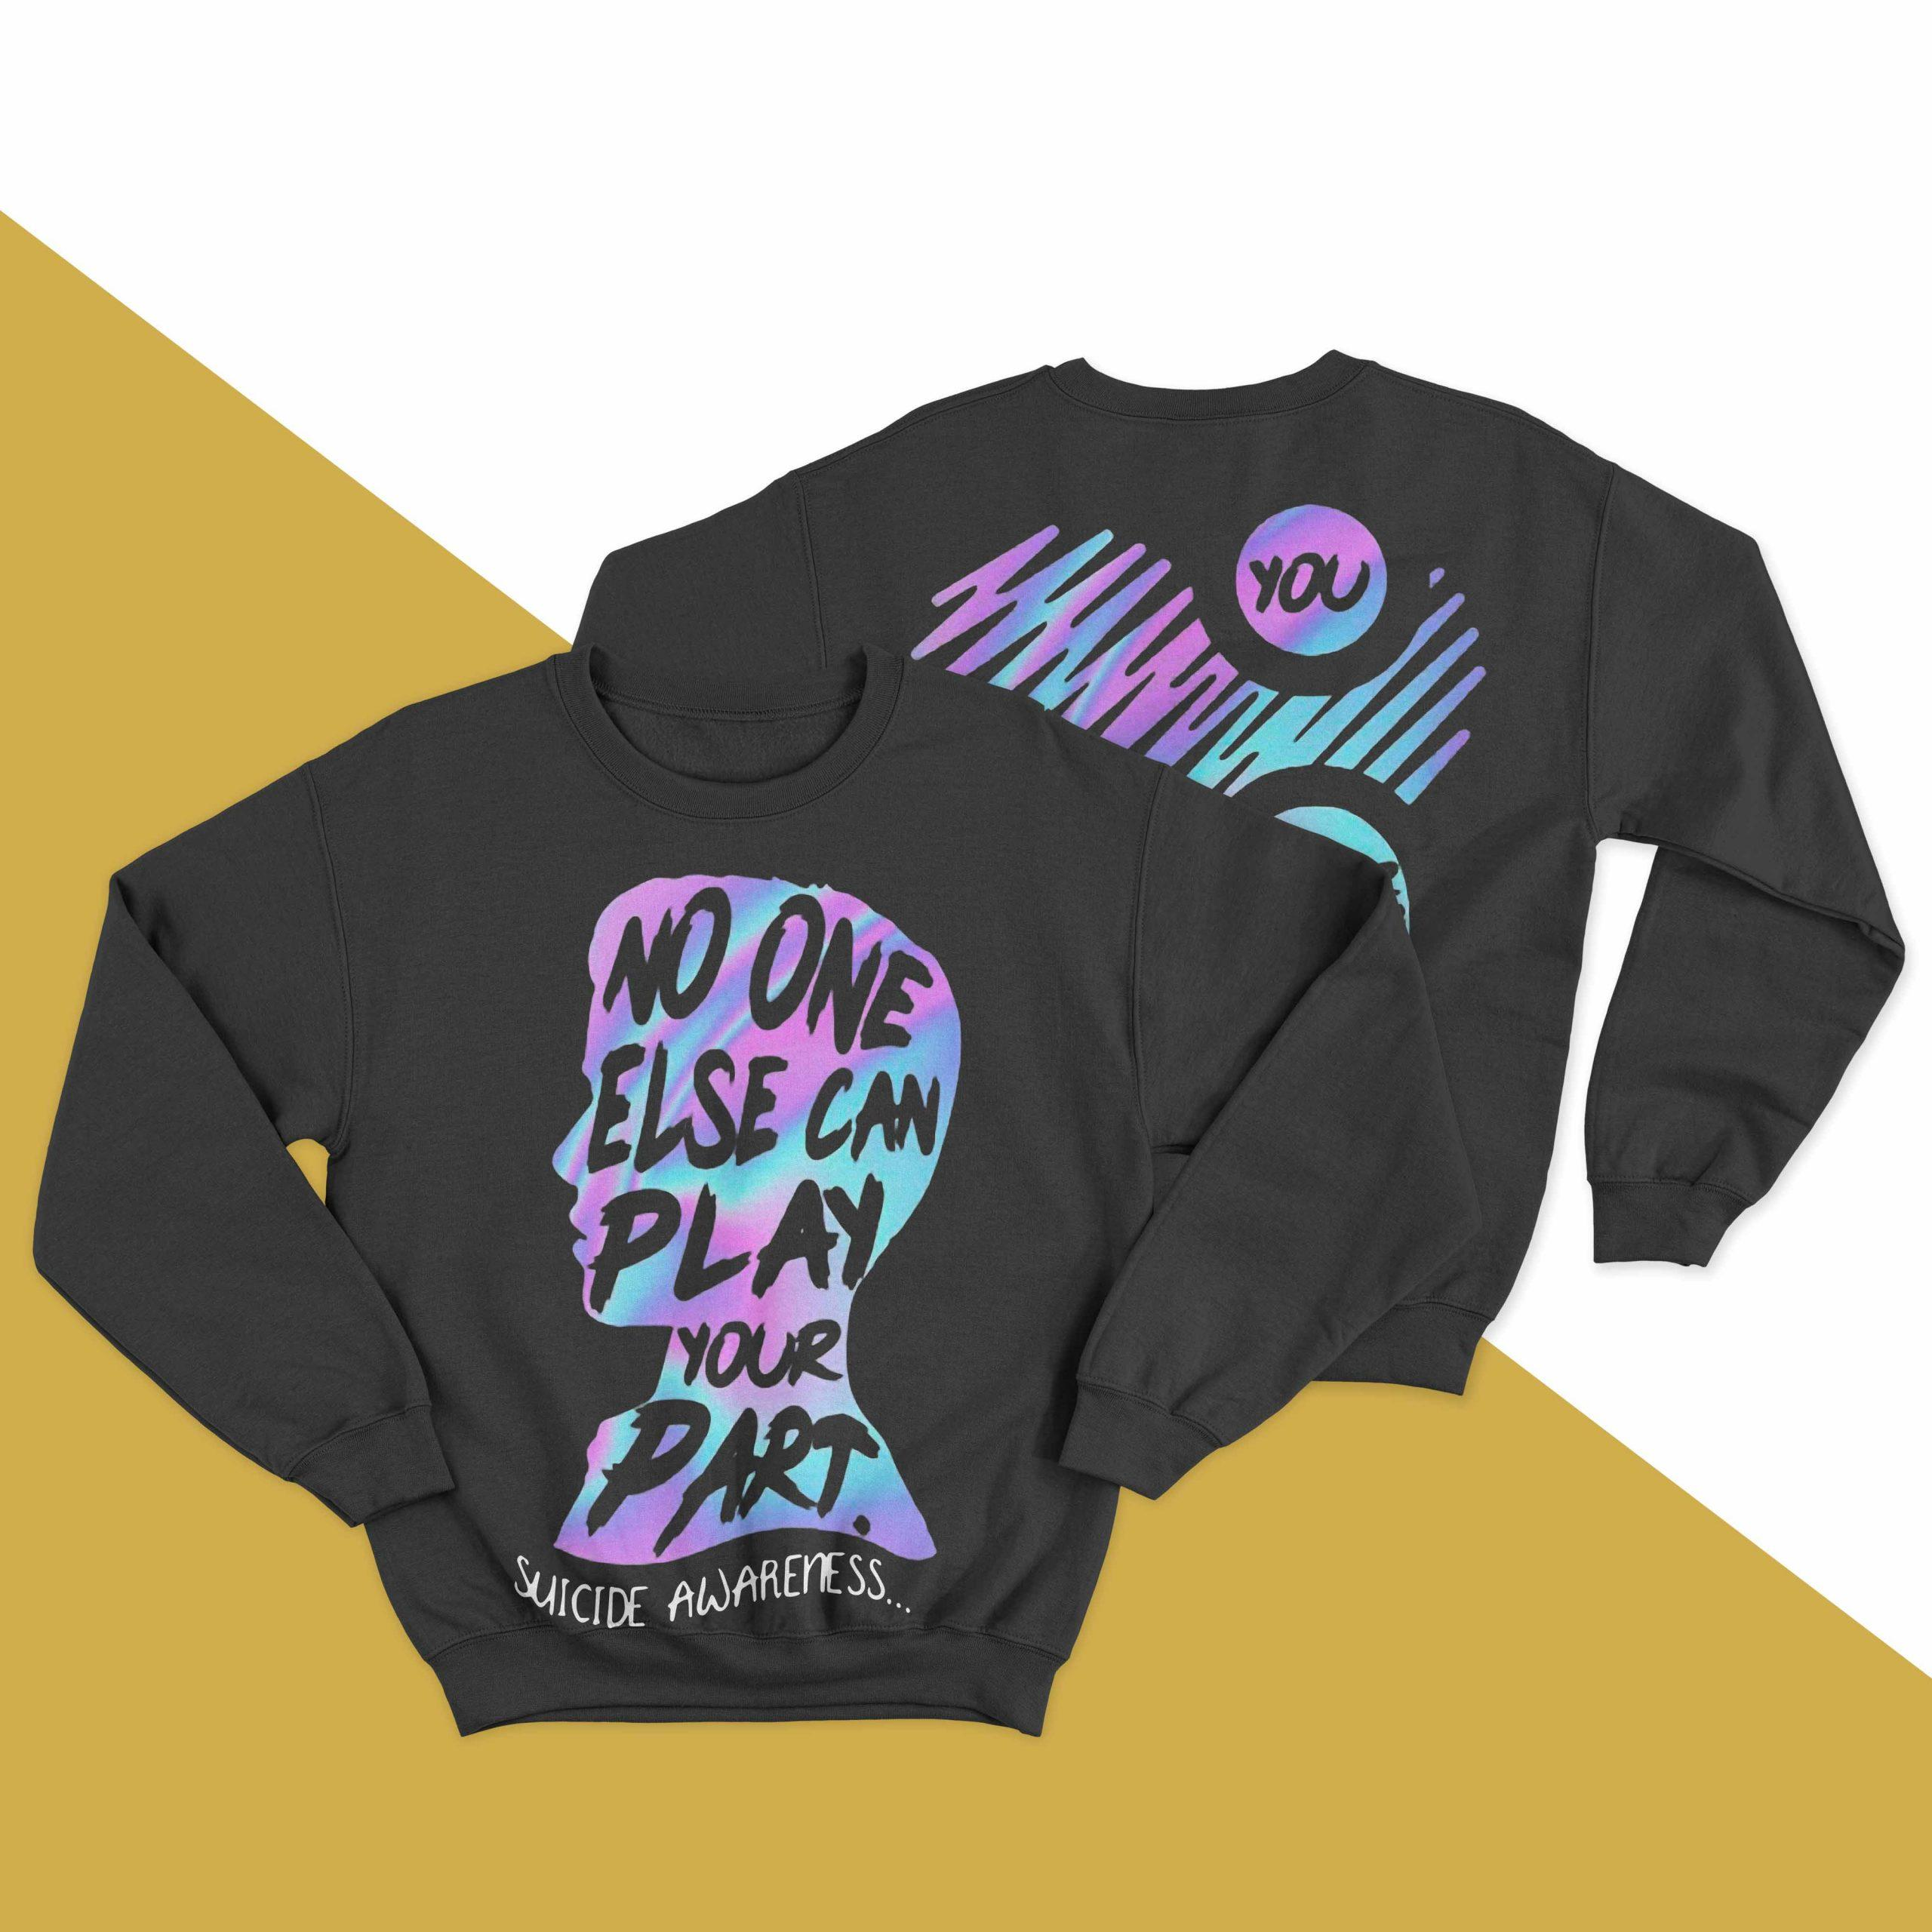 No One Else Can Play Your Part Suicide Awareness Longsleeve